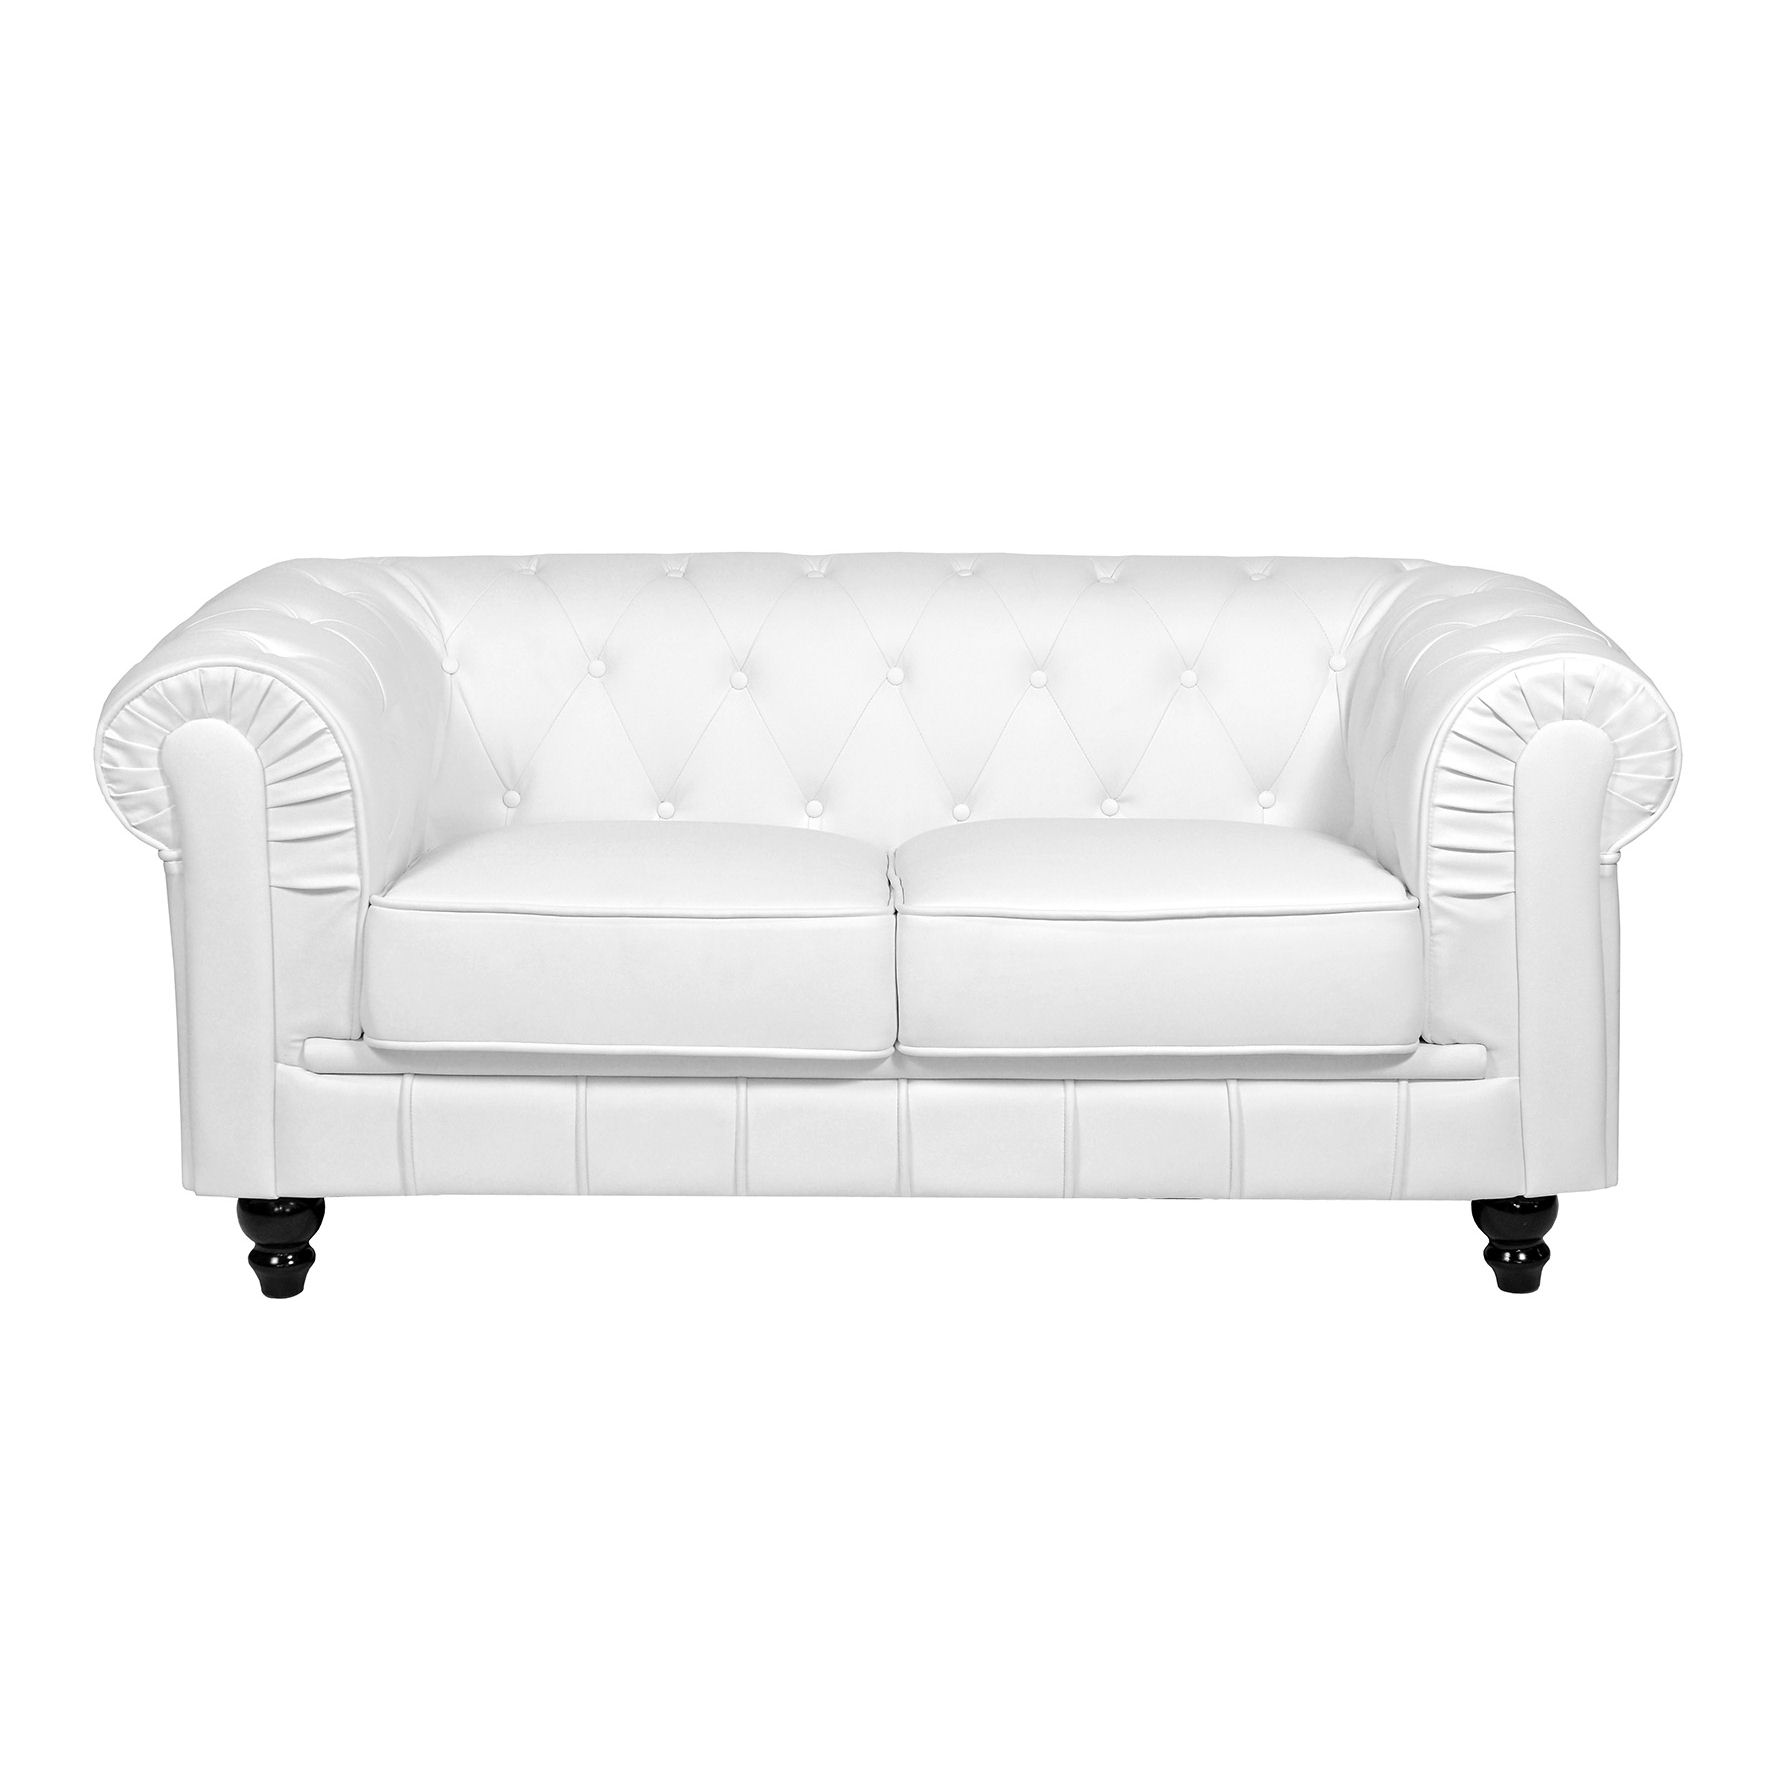 Deco in paris canape 2 places blanc chesterfield can chester 2p pu blanc - Taille canape 2 places ...